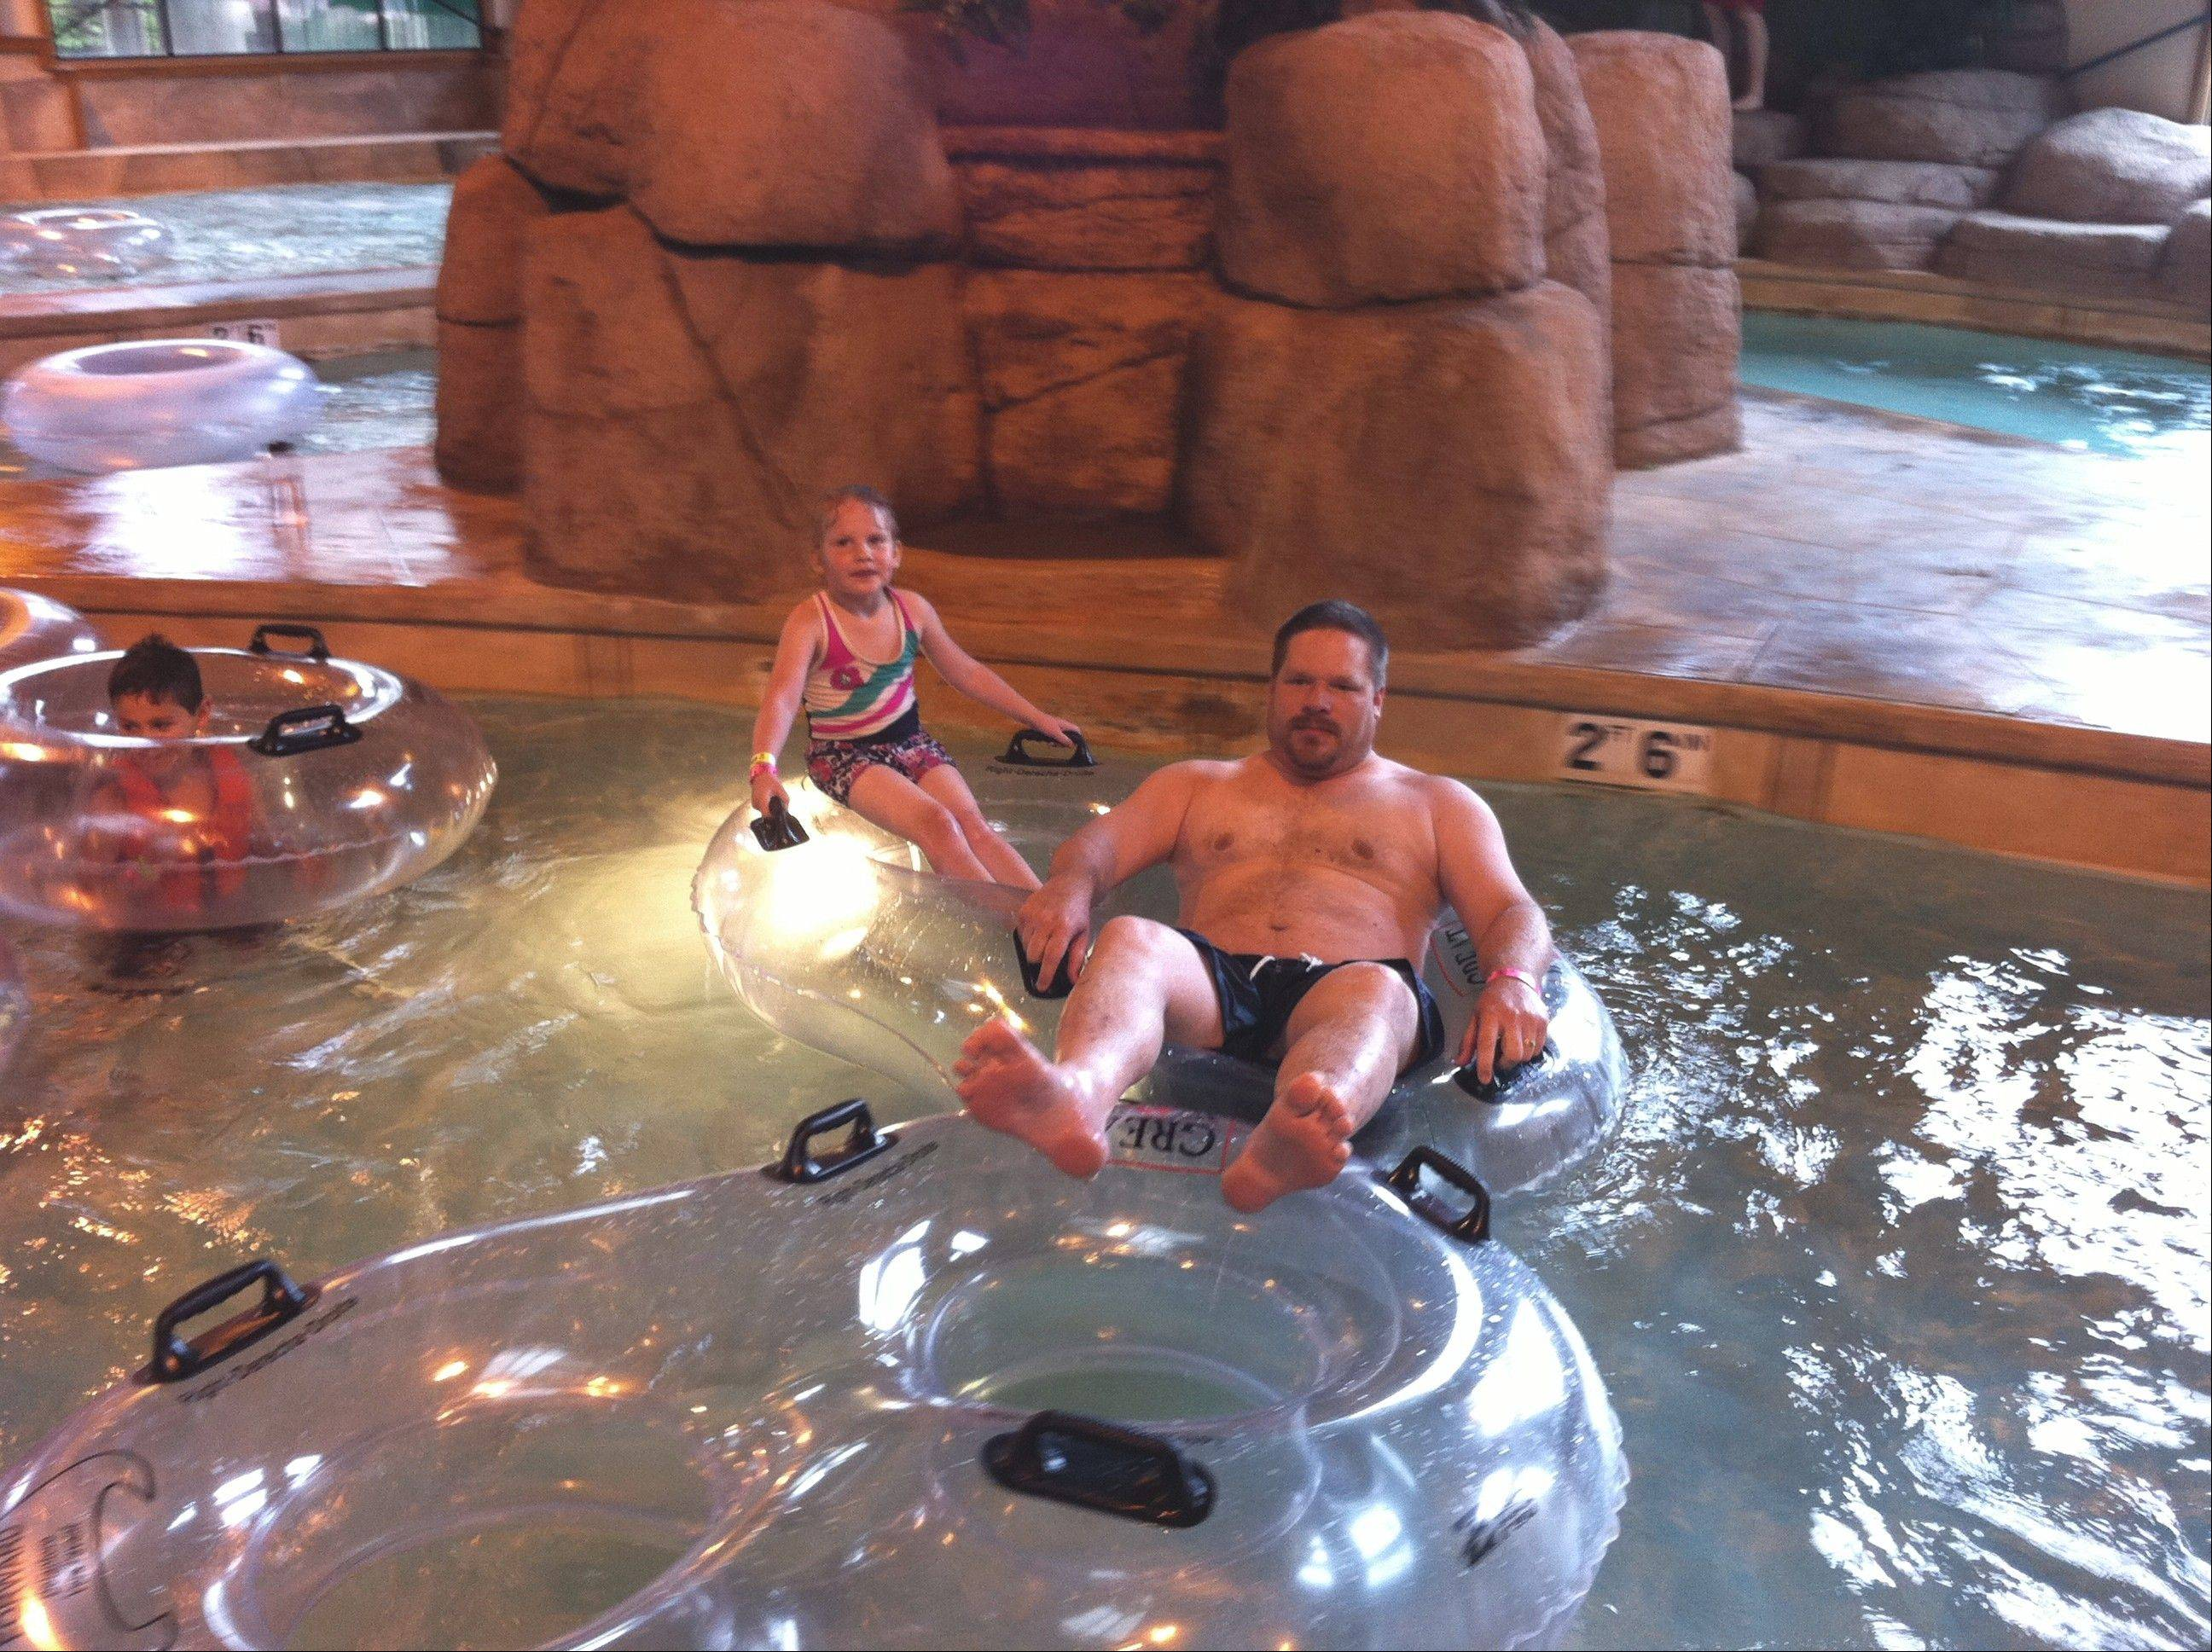 Great Wolf Lodge, which has a location in Traverse City, Mich., near the picturesque Sleeping Bear Dunes, is great fun for the whole family.